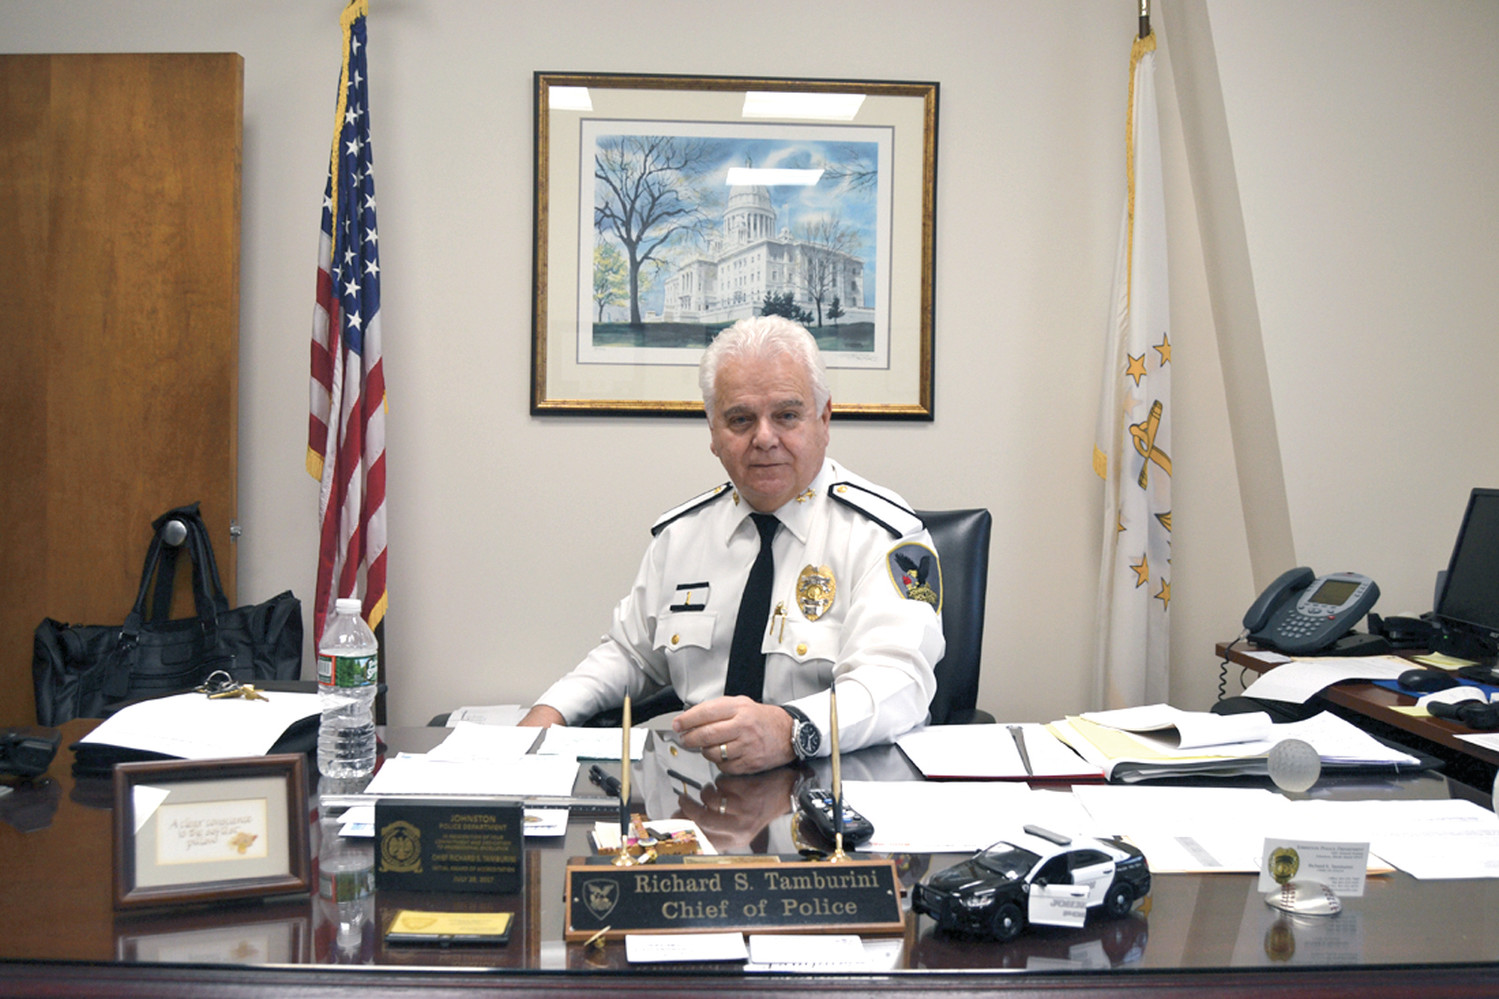 WE'RE READY: Johnston Police Chief Richard S. Tamburini believes the department's strict protocols and demanding training schedules provide the resources officers need to protect Johnston's schools.